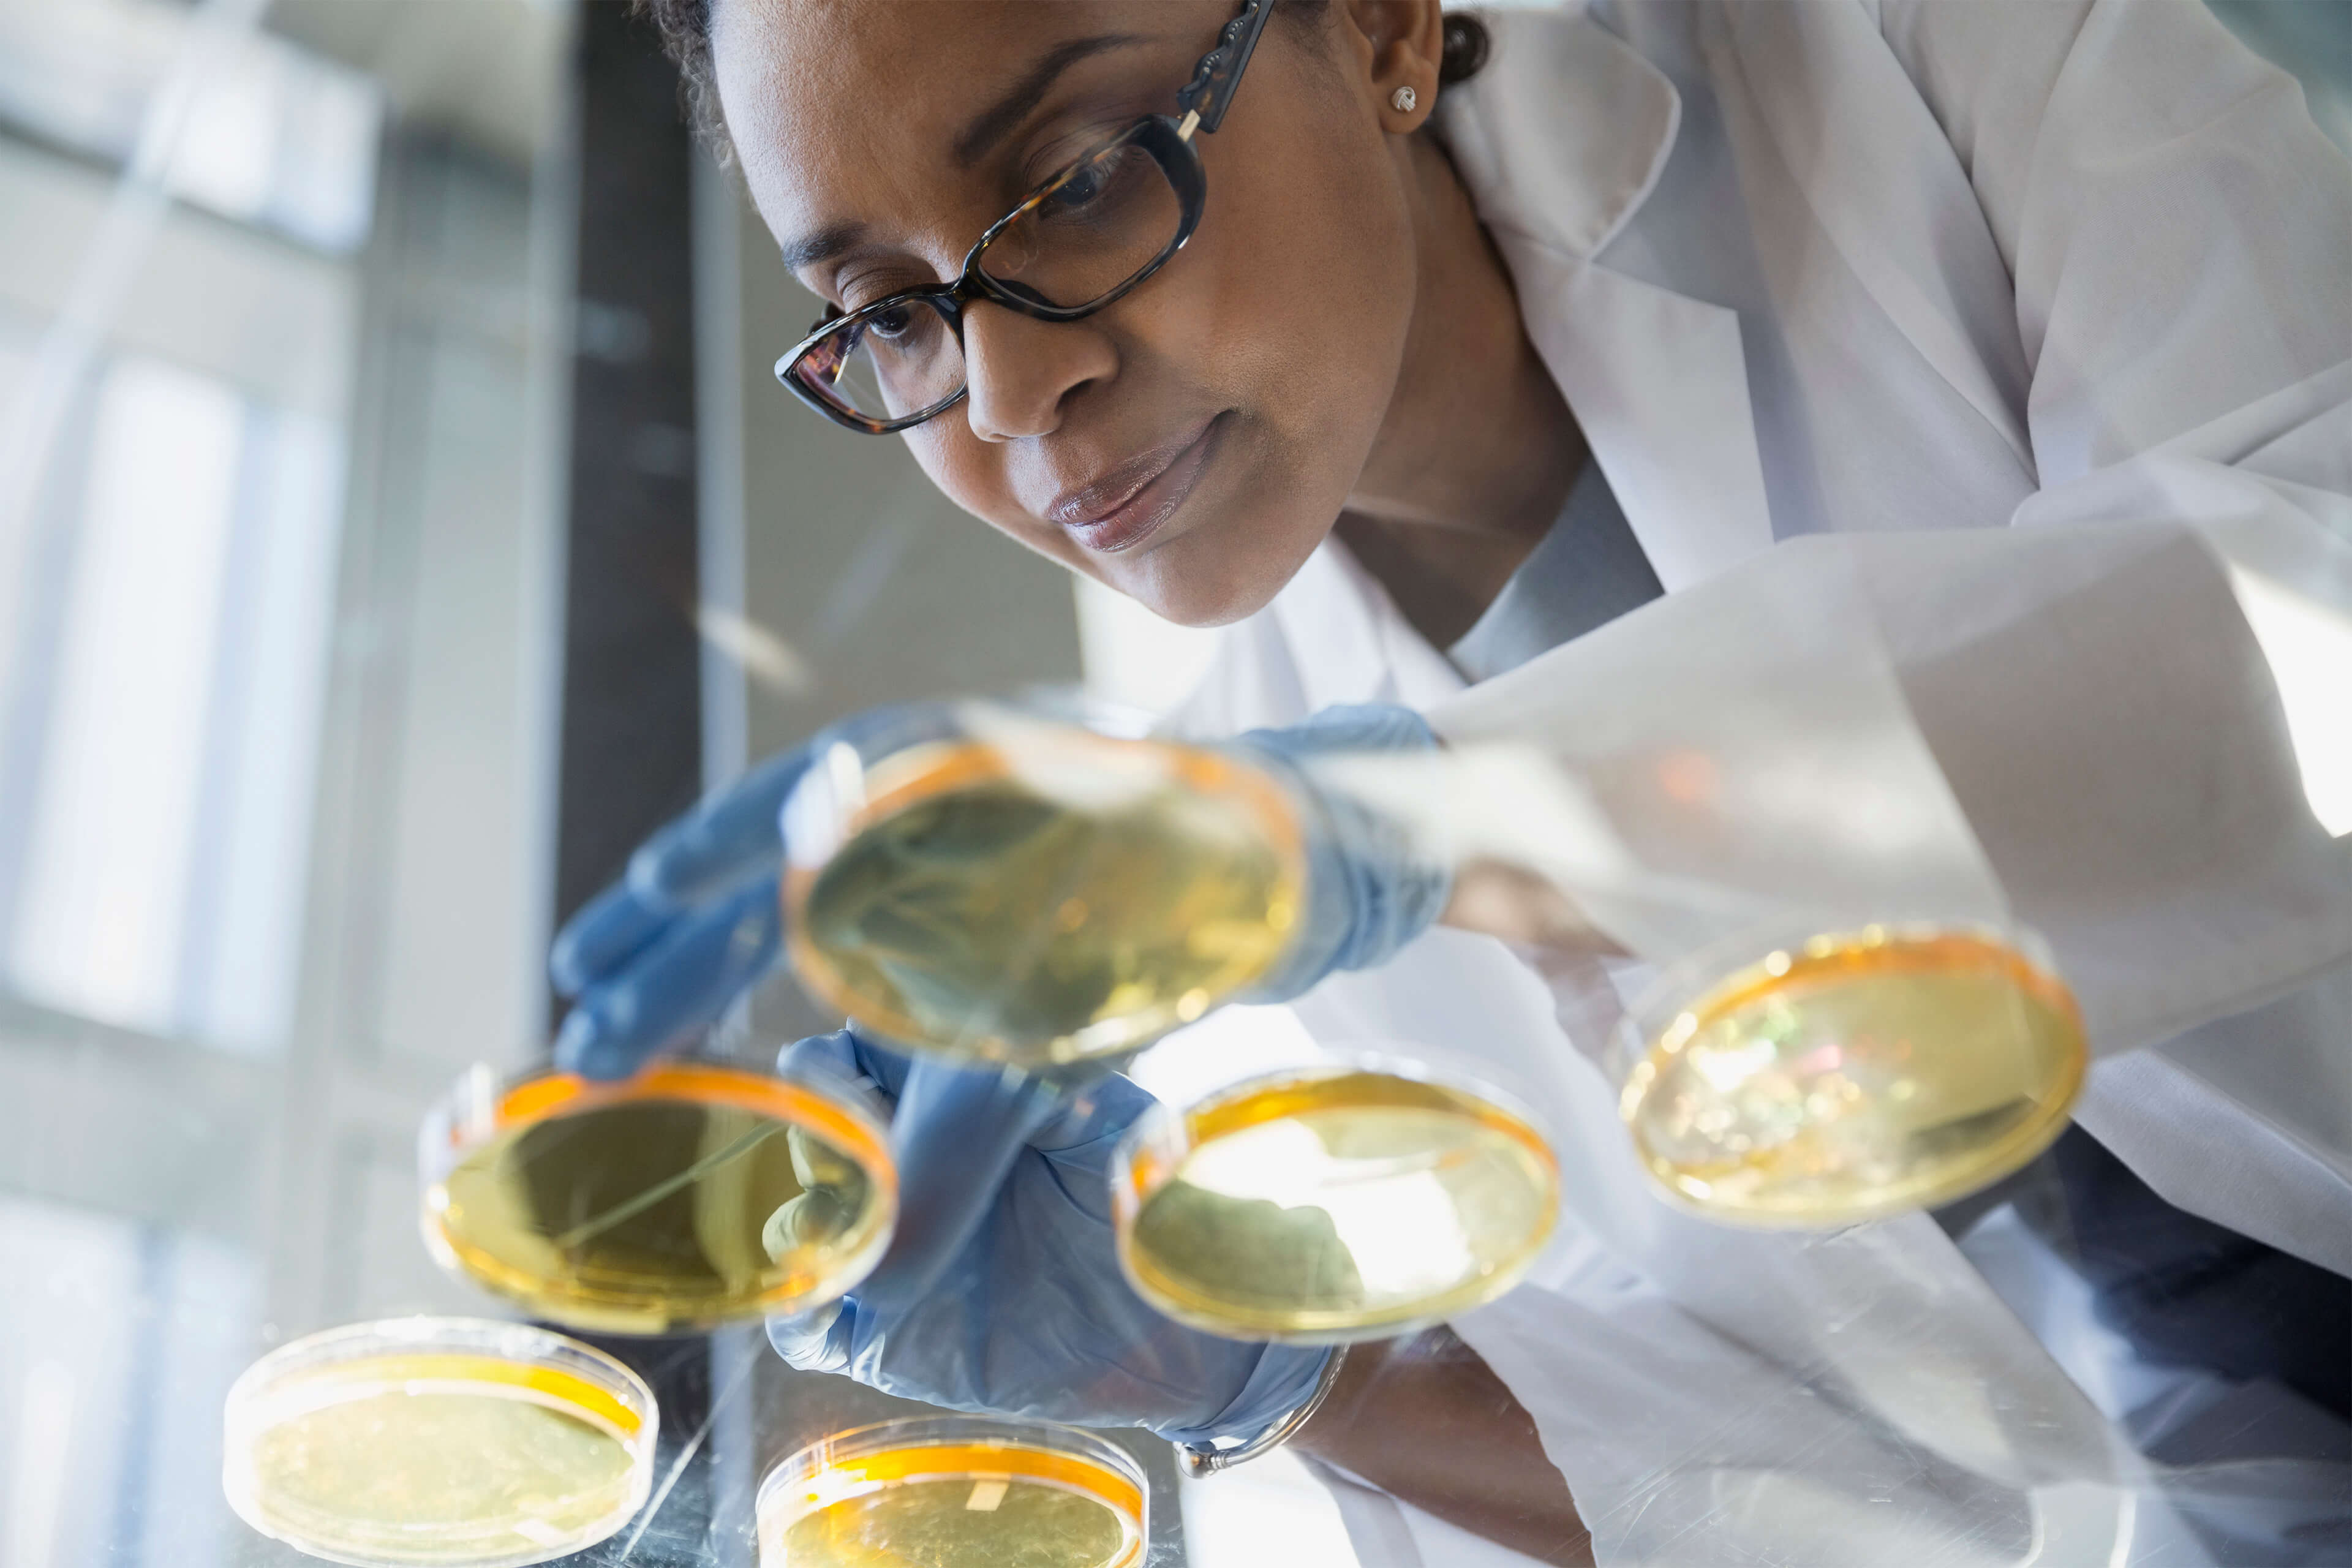 A female scientist examines yellow petri dishes on a glass table